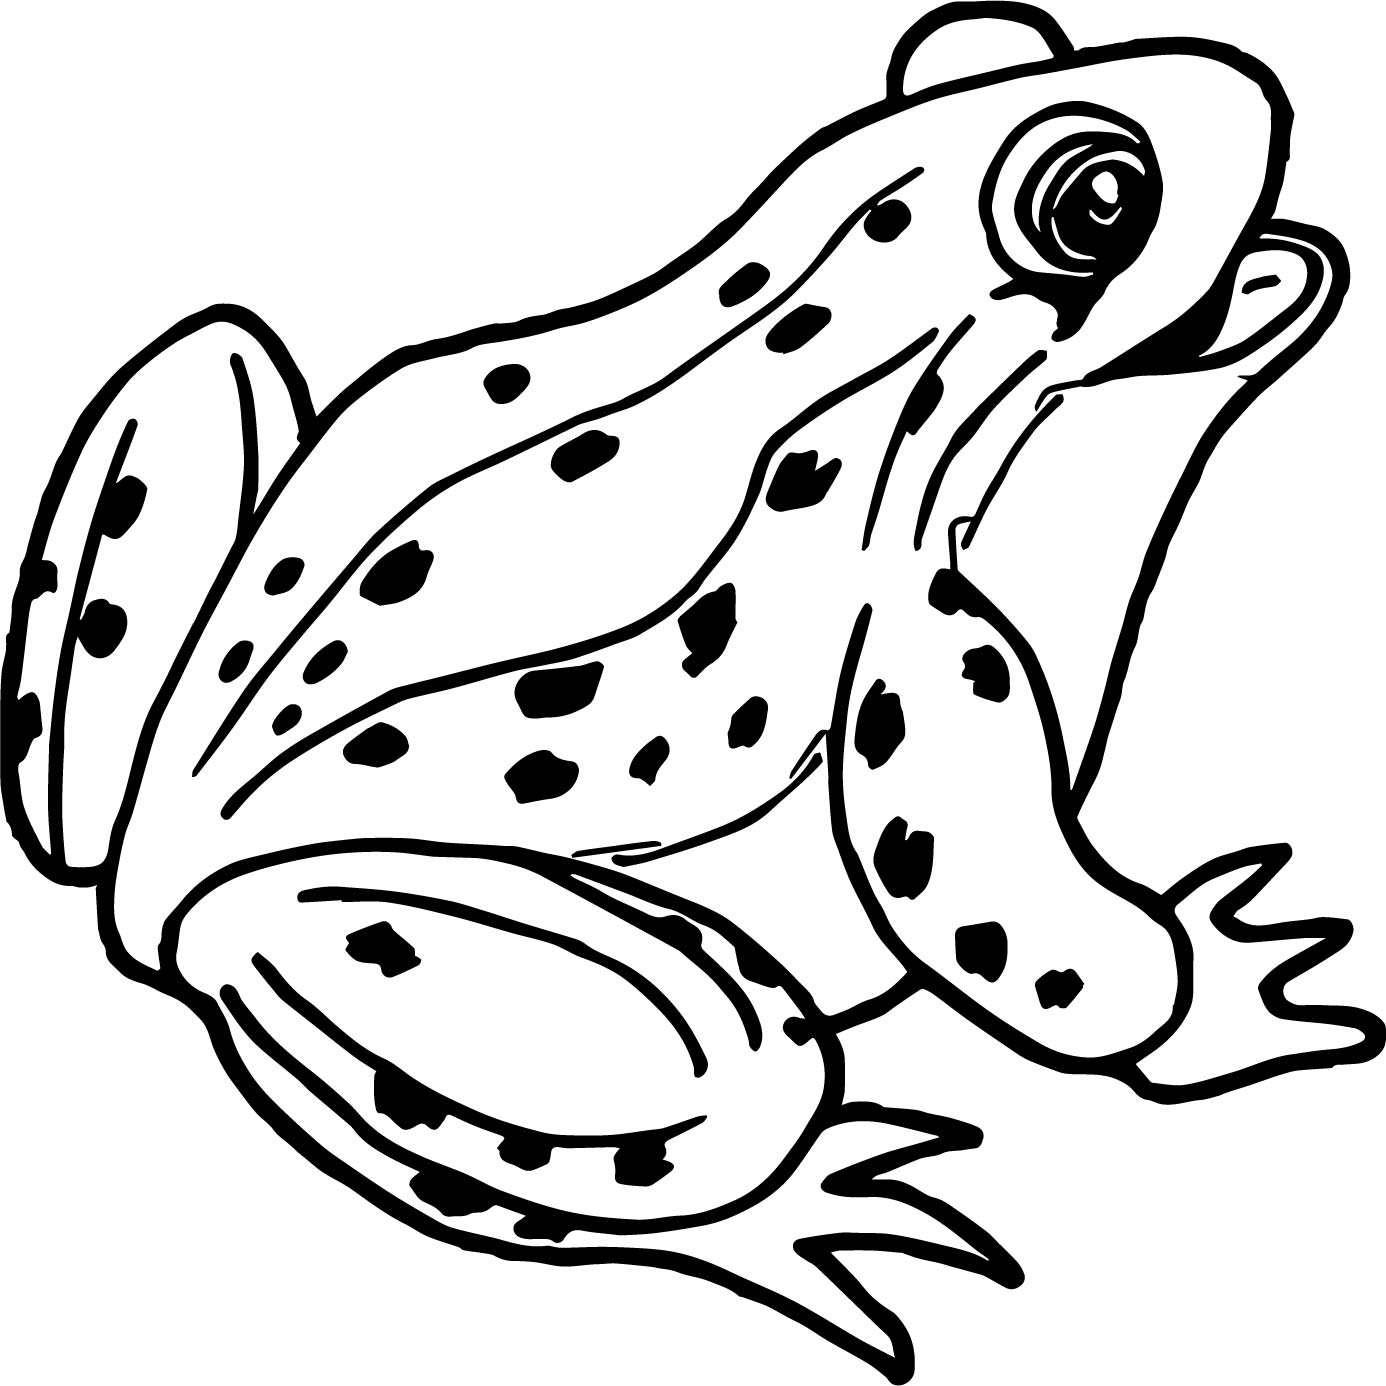 frogs coloring pages tree frog coloring pages free download on clipartmag frogs pages coloring